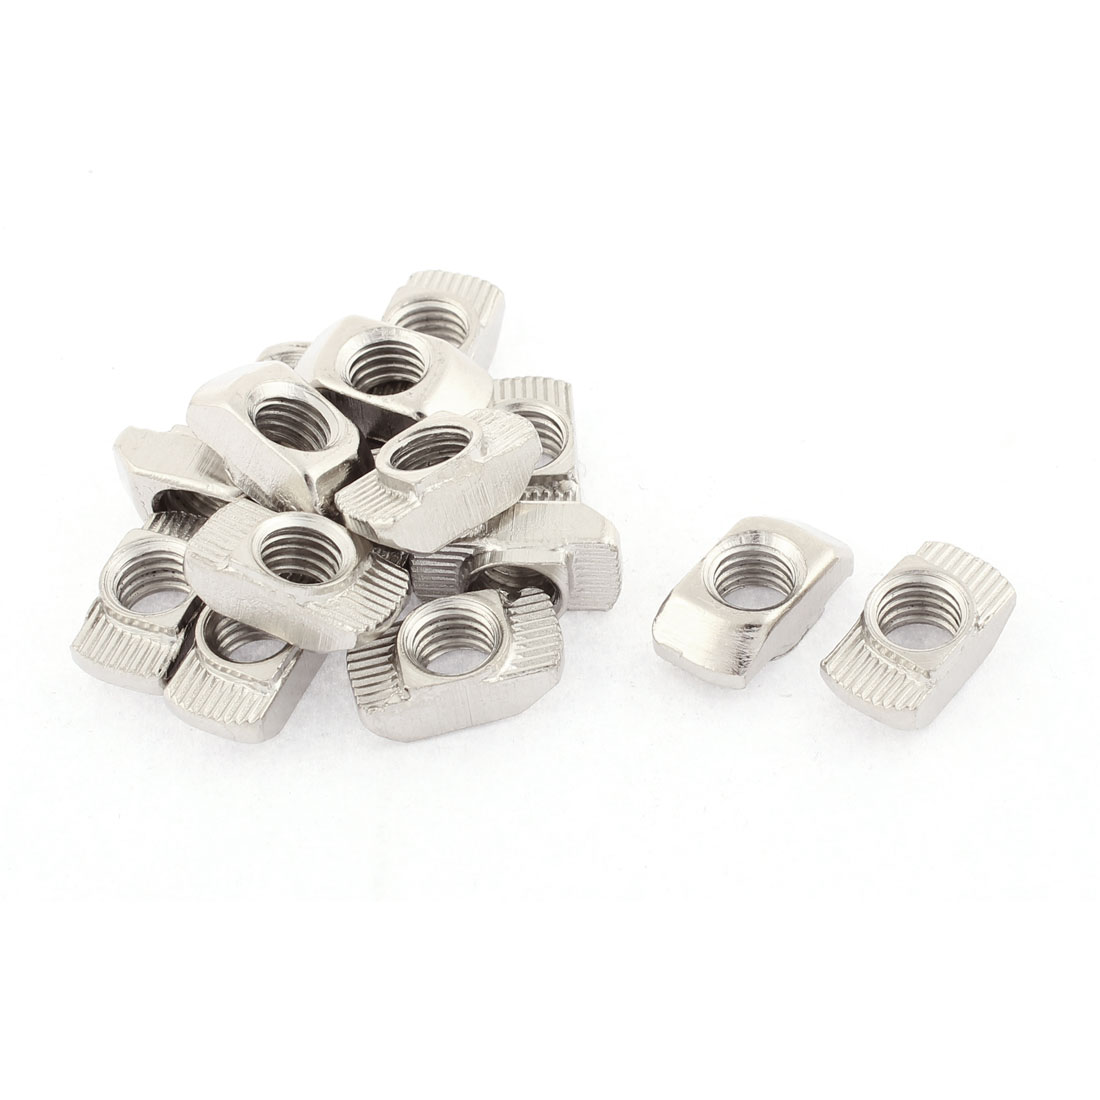 M8 Thread Dia Drop In Type T Slot Nuts Silver Tone 15pcs